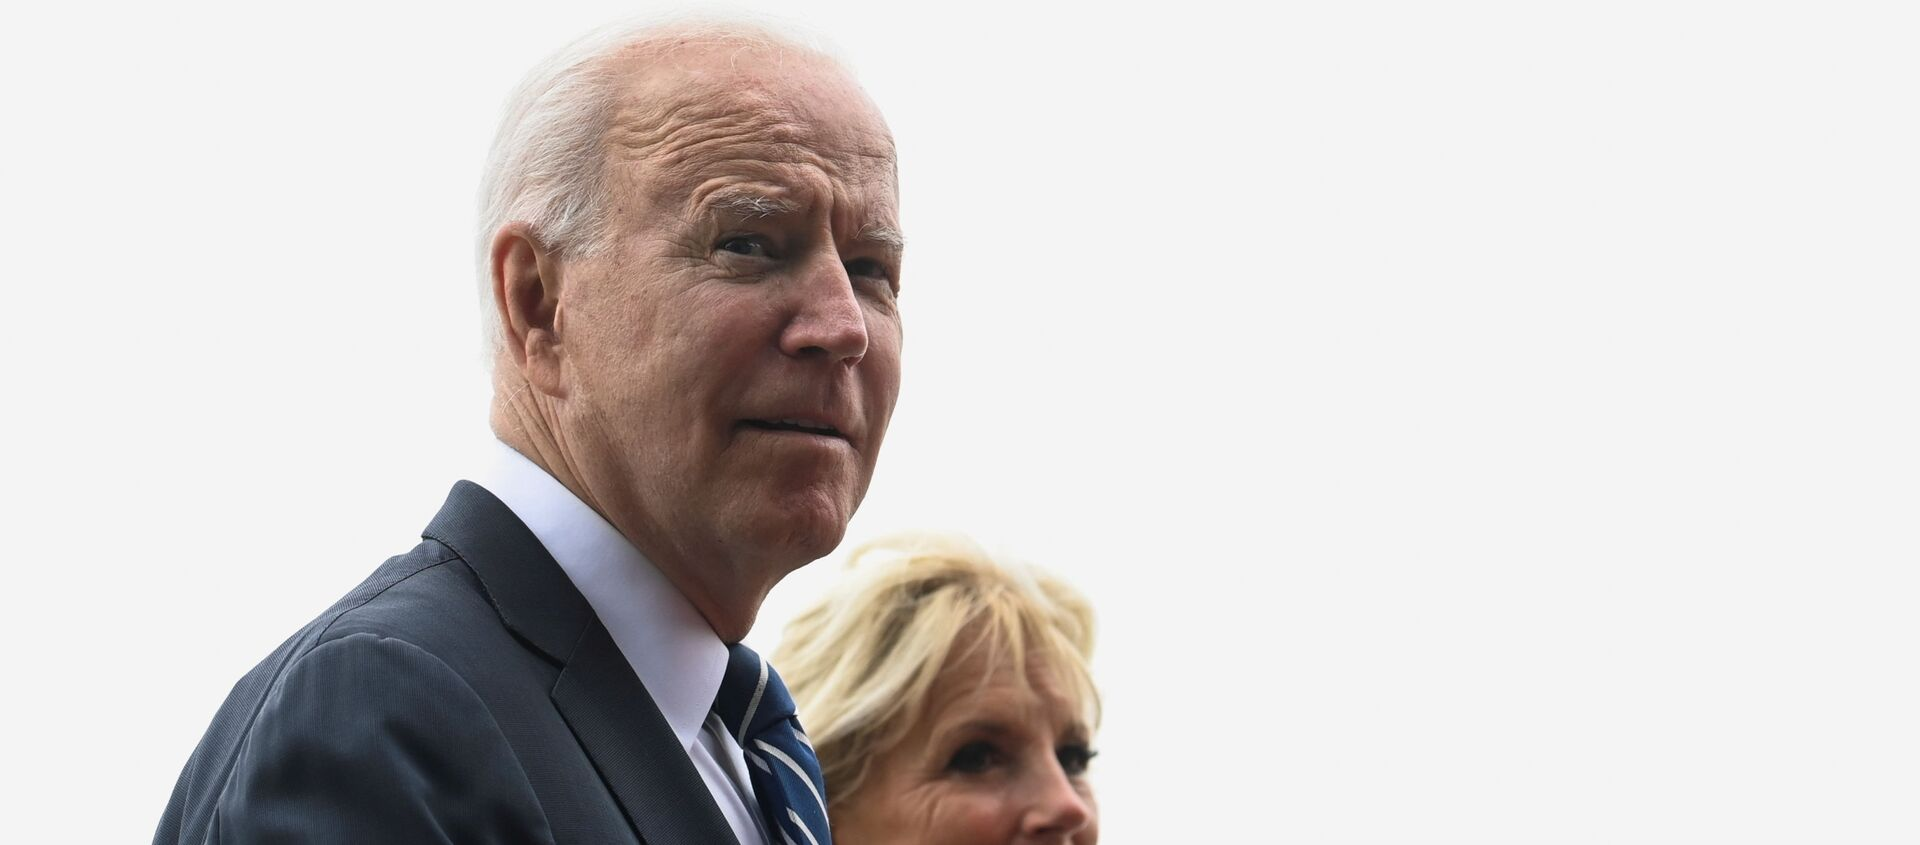 U.S. President Joe Biden and first lady Jill Biden walk outside Carbis Bay Hotel during their meeting with Britain's Prime Minister Boris Johnson and his wife Carrie Johnson (not pictured) , at Carbis Bay, Cornwall, Britain June 10, 2021. - Sputnik International, 1920, 12.06.2021